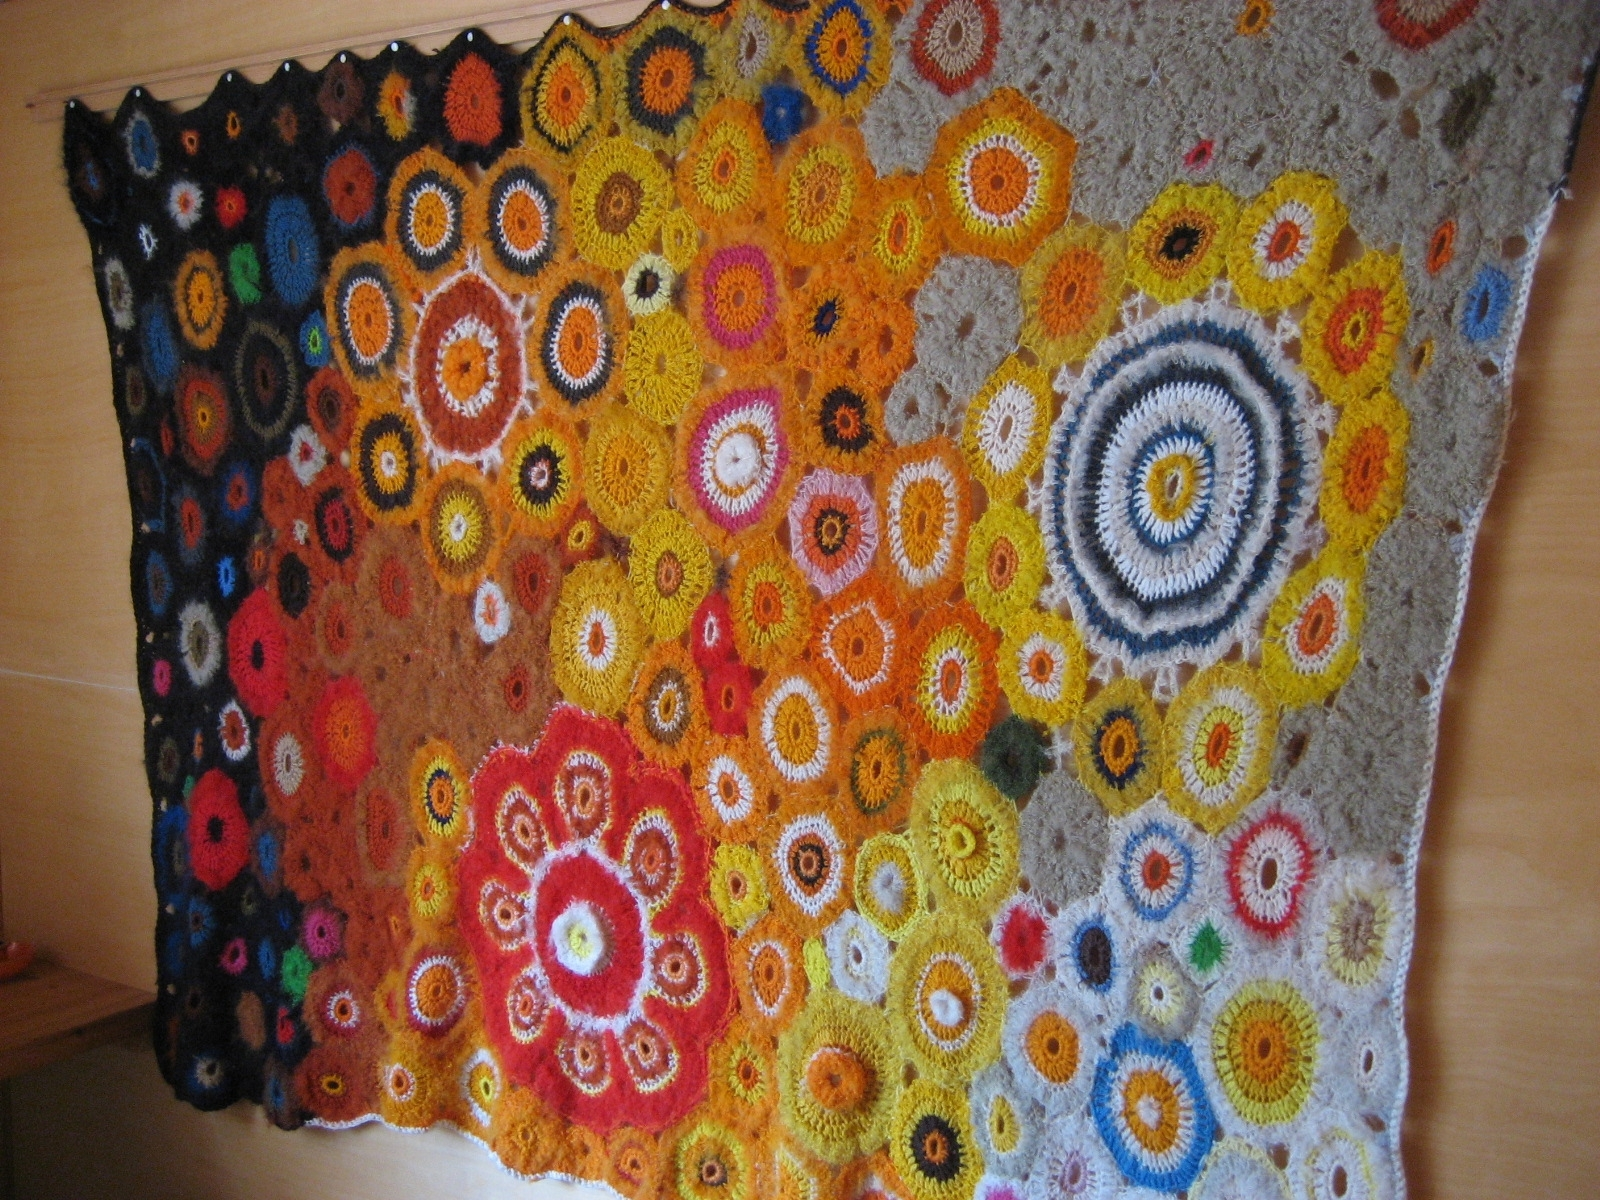 Crochet Wall Hanging | Nero's Post And Patch I (2010 2012) In Recent Crochet Wall Art (Gallery 4 of 20)